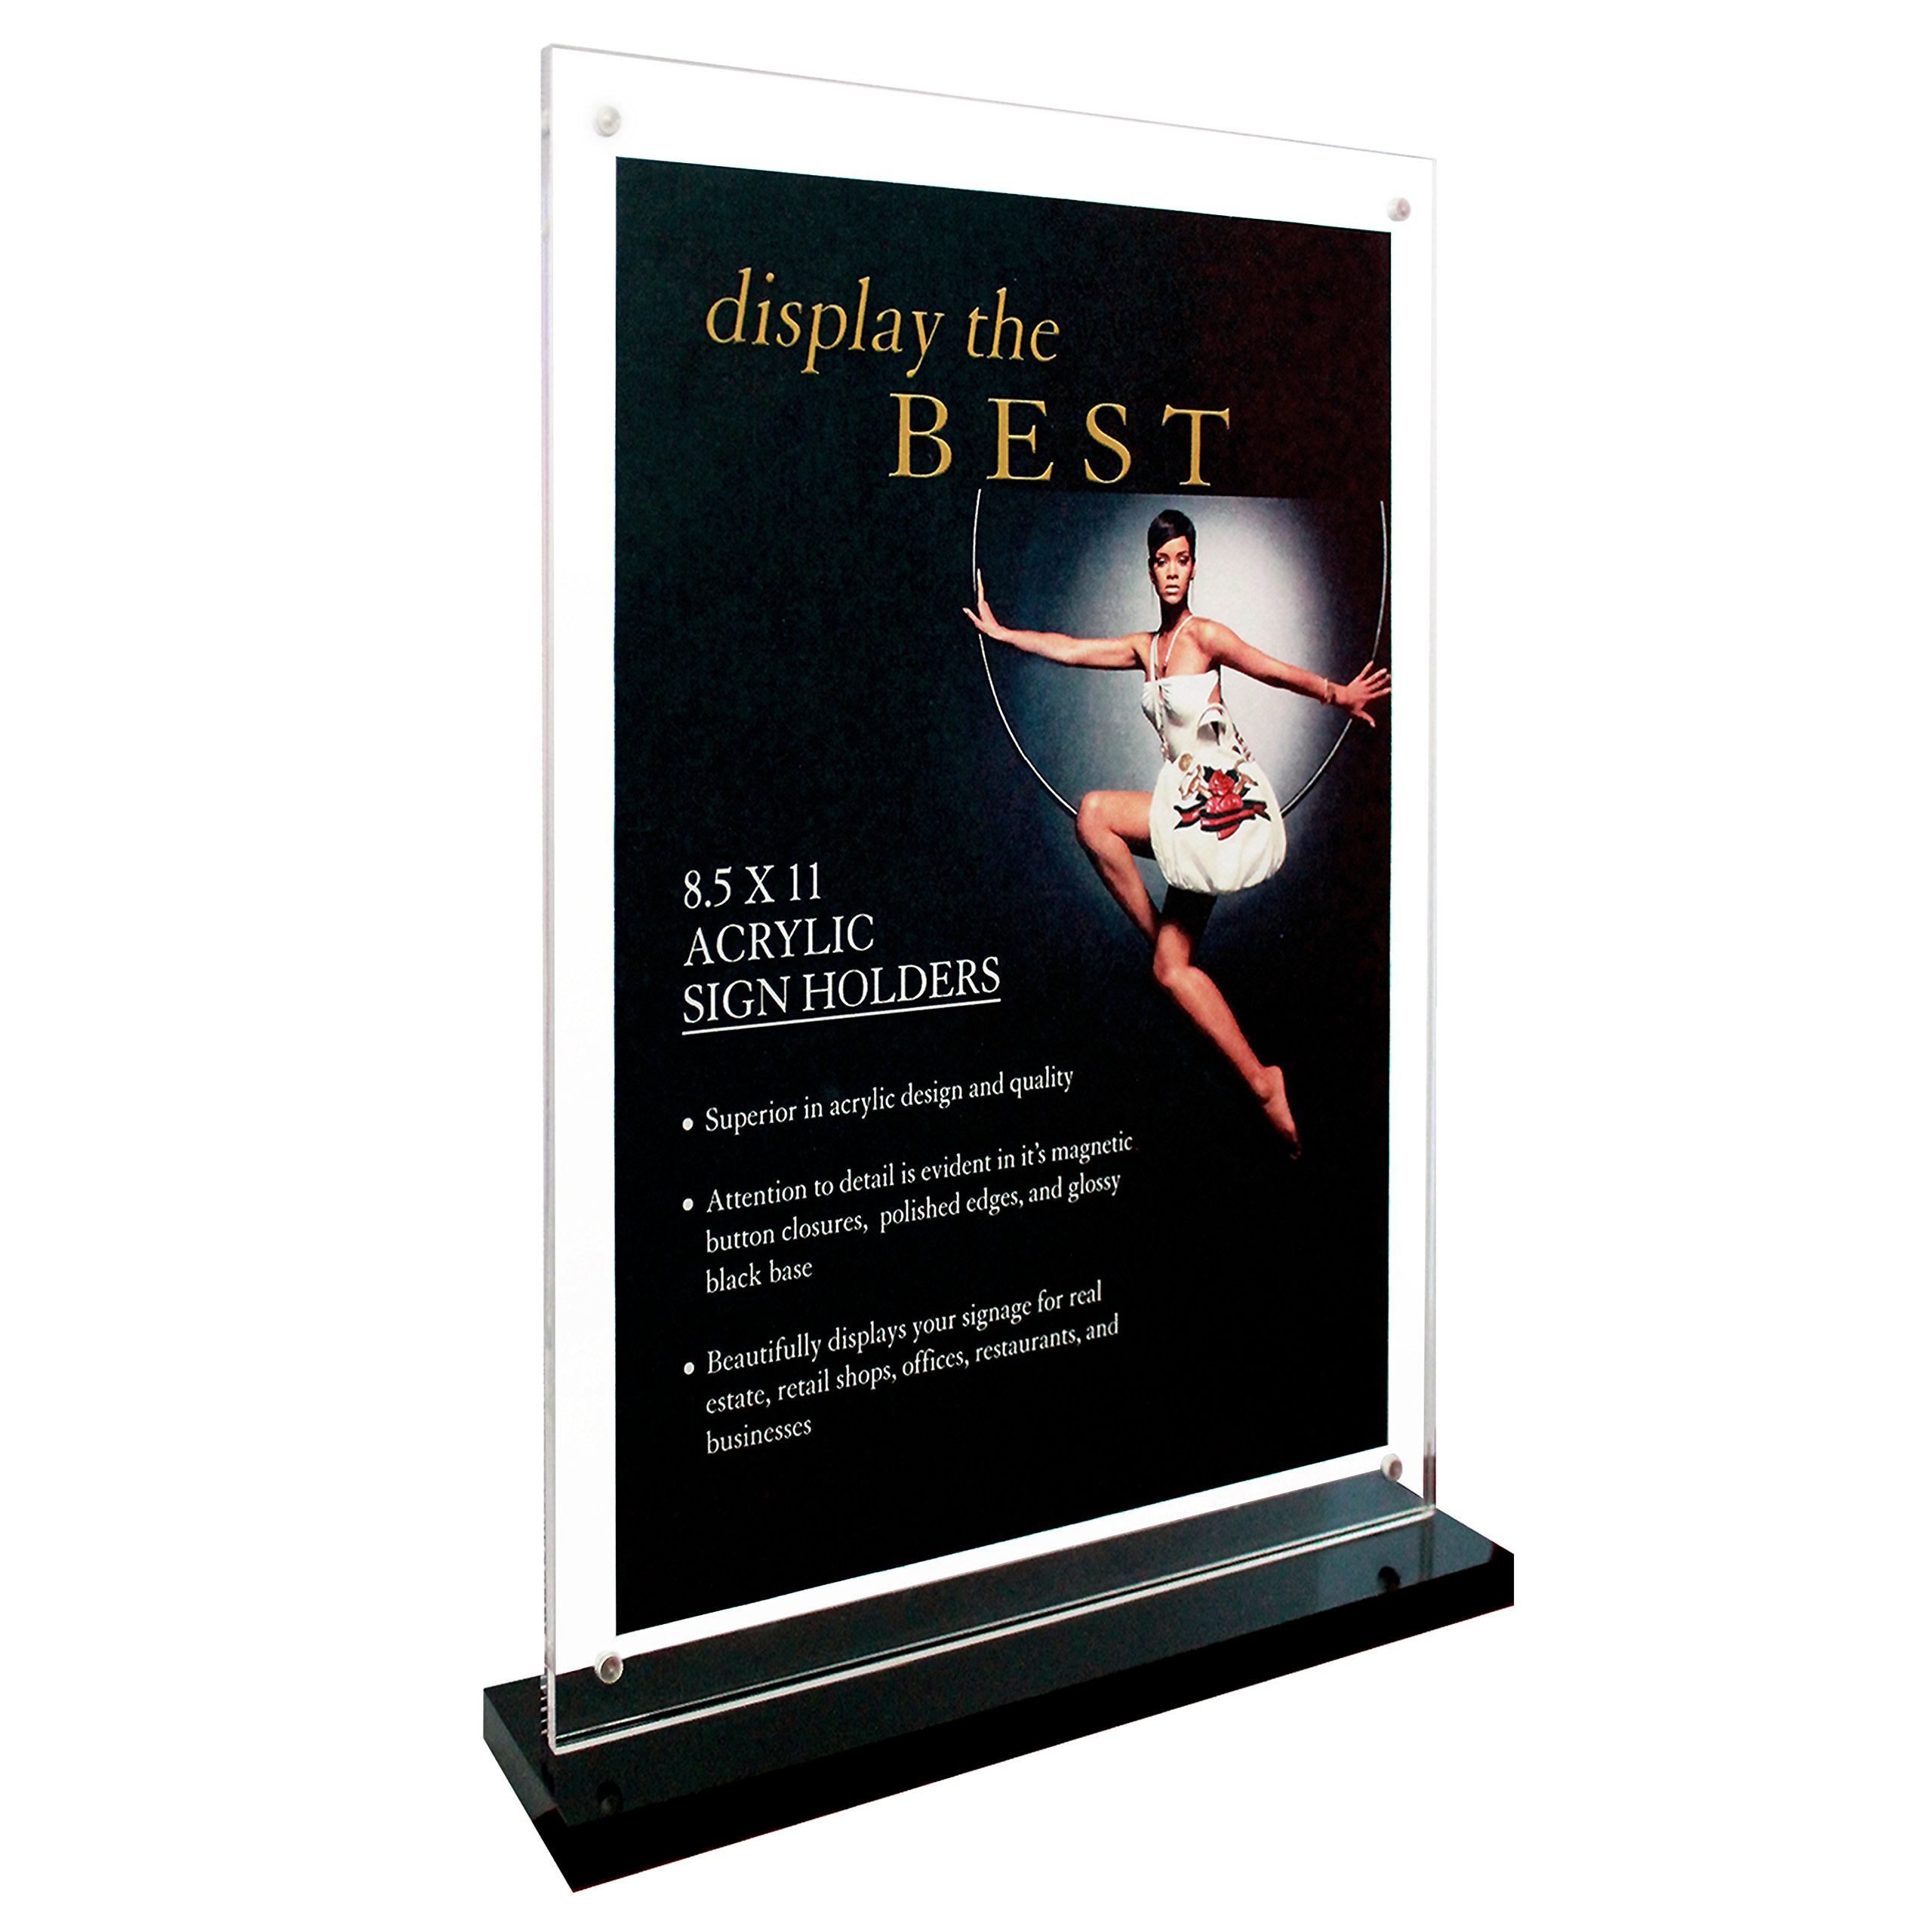 Deluxe Acrylic Sign Holder with Black Base and Magnet Button Closures (Black, 8.5''x11'')